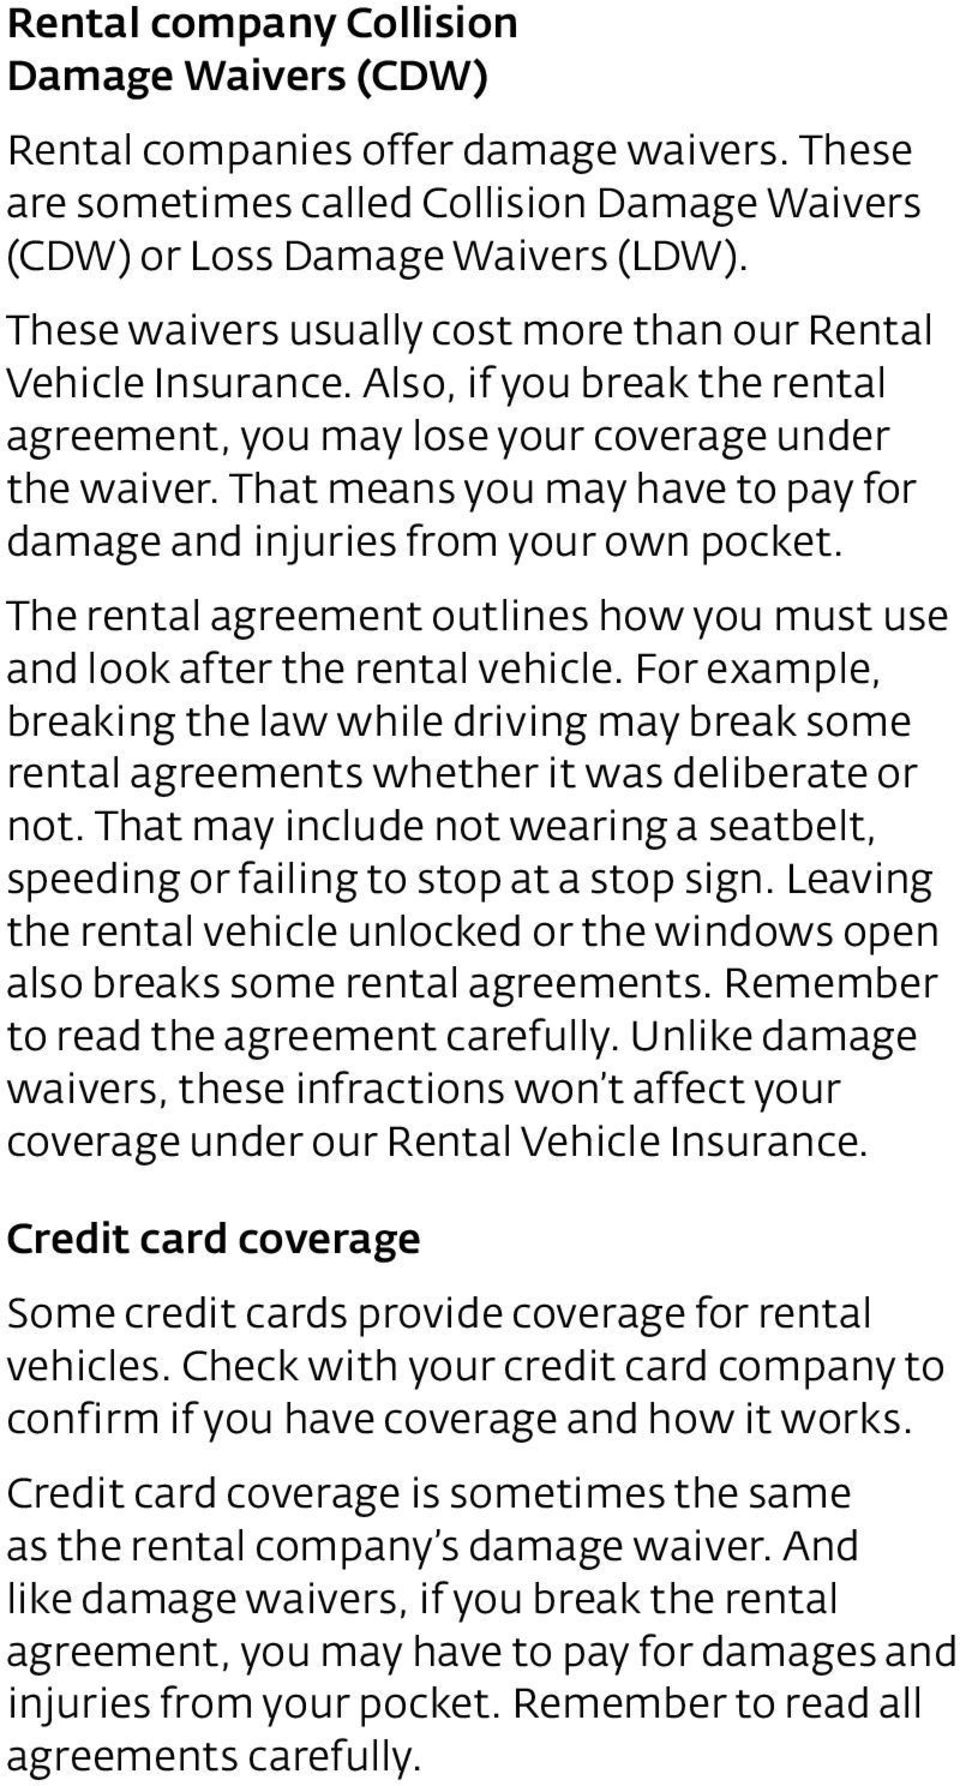 That means you may have to pay for damage and injuries from your own pocket. The rental agreement outlines how you must use and look after the rental vehicle.